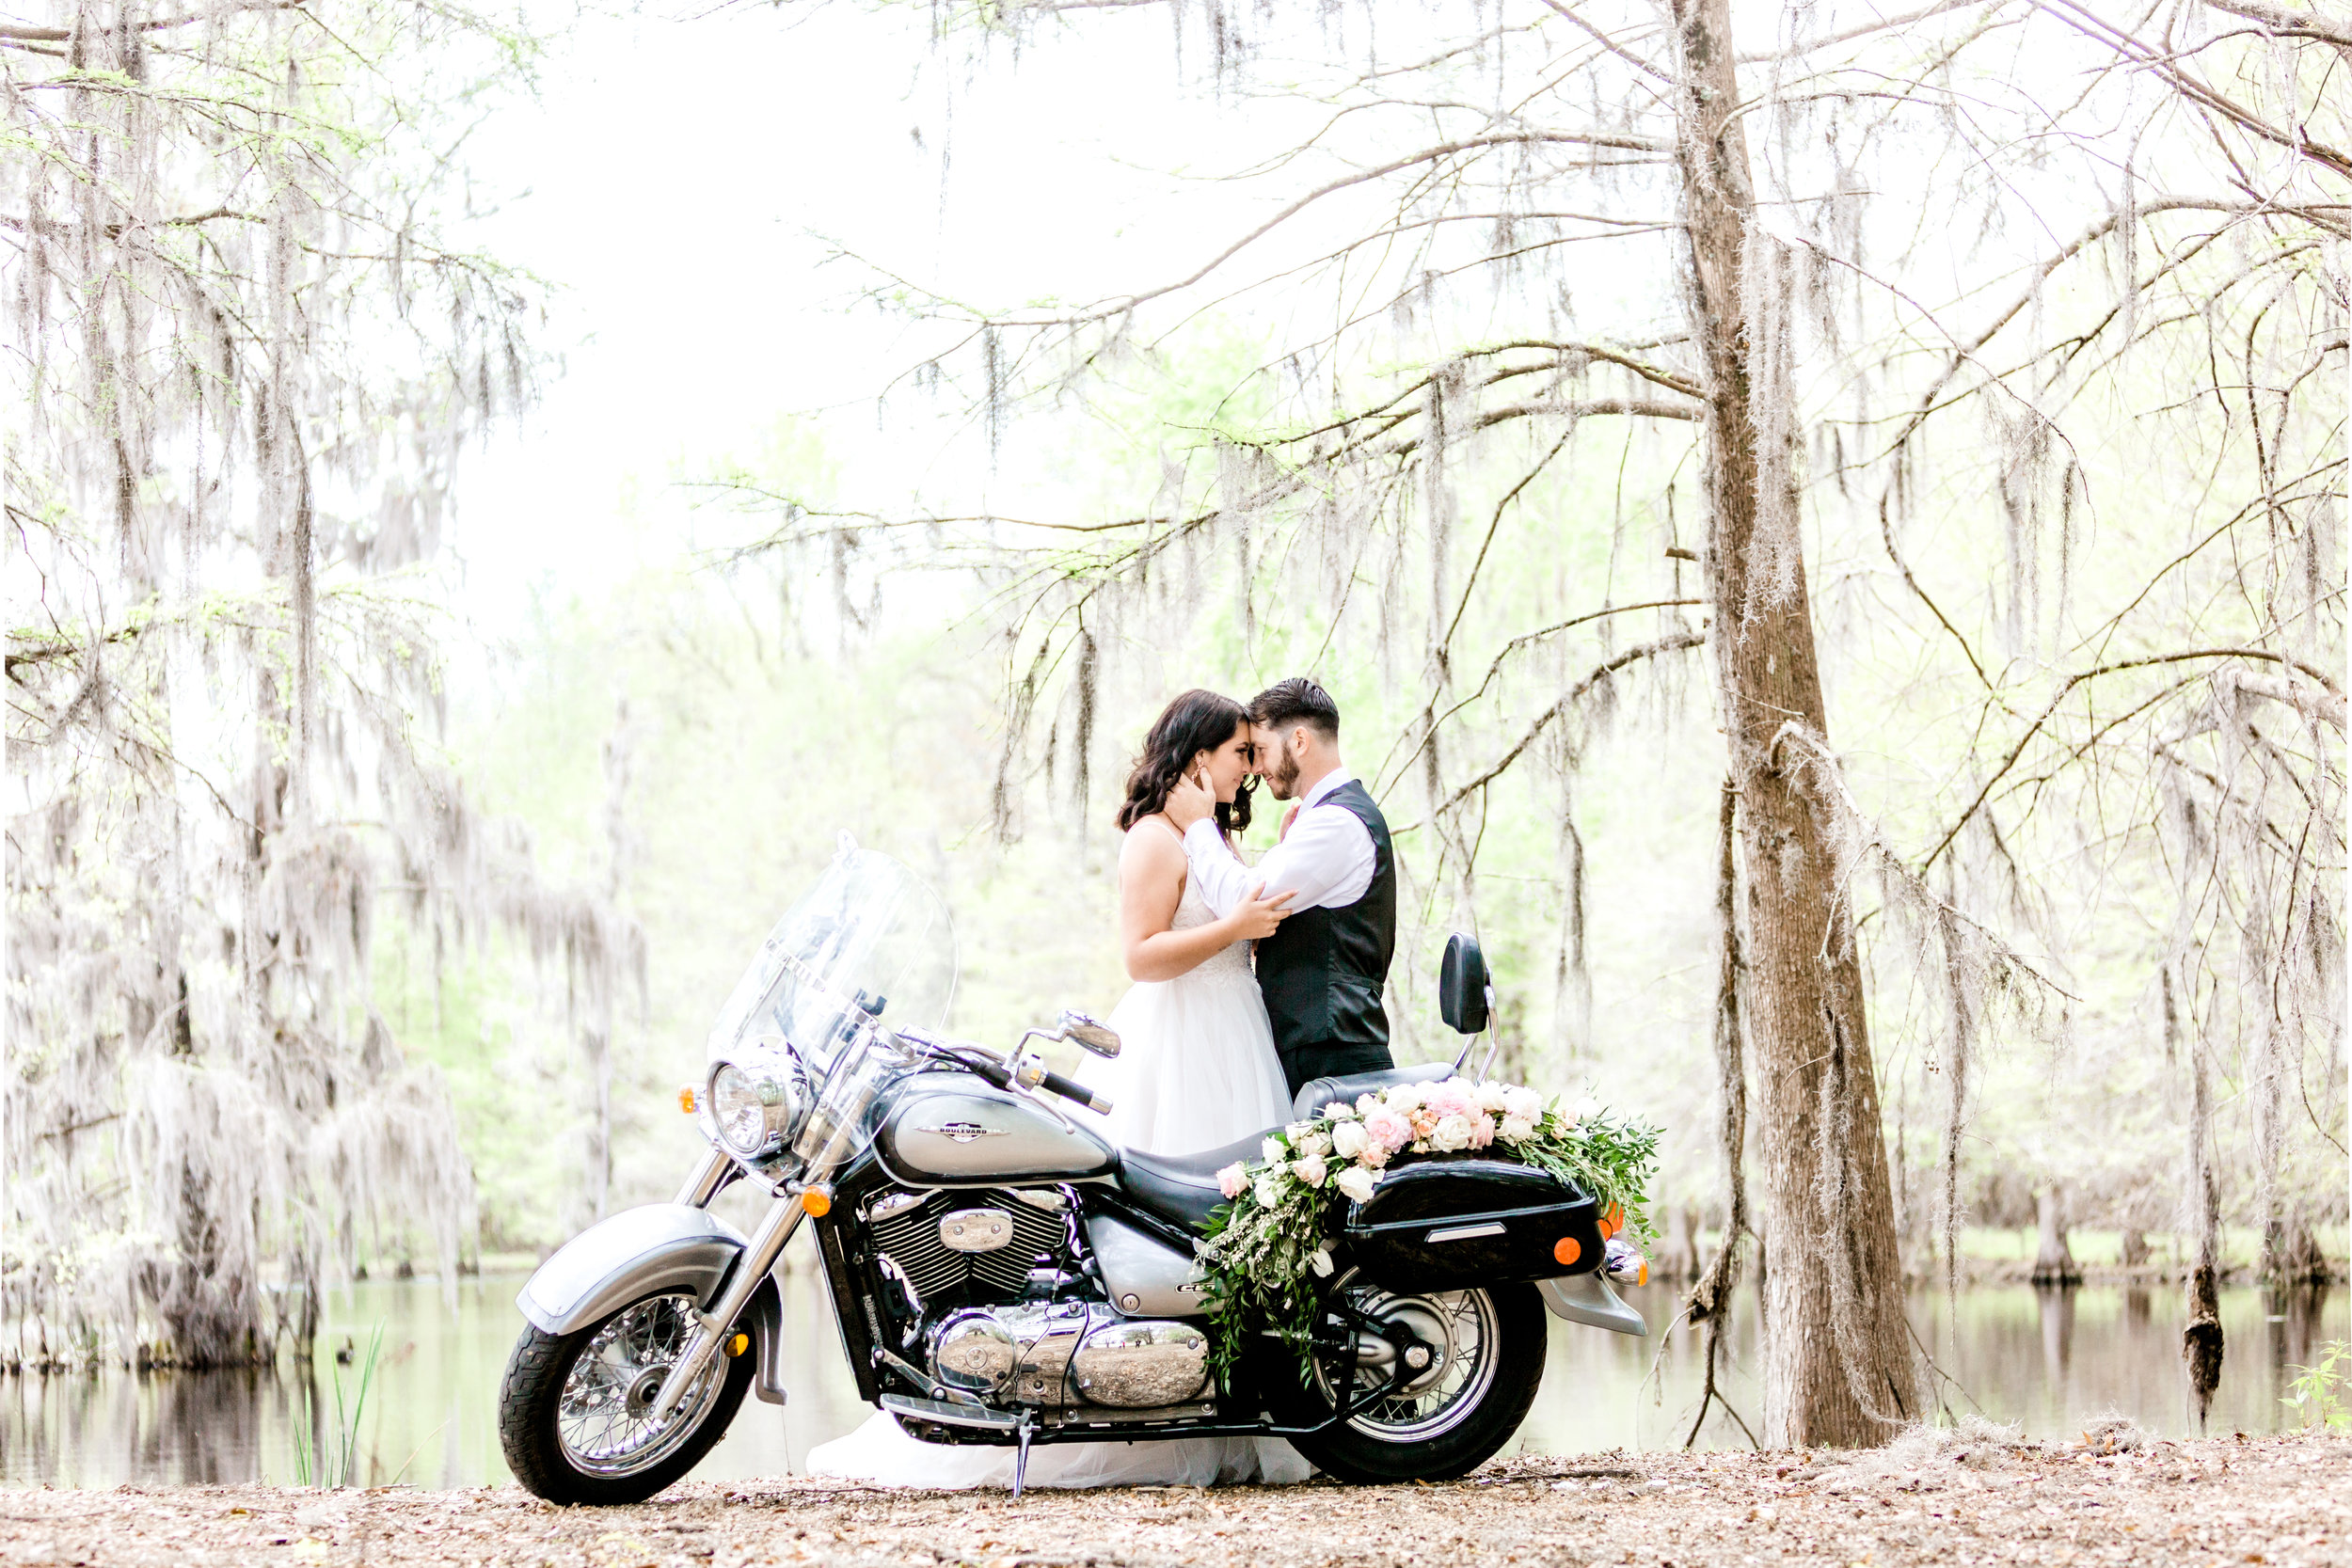 Outdoor wedding motorcycle.jpg